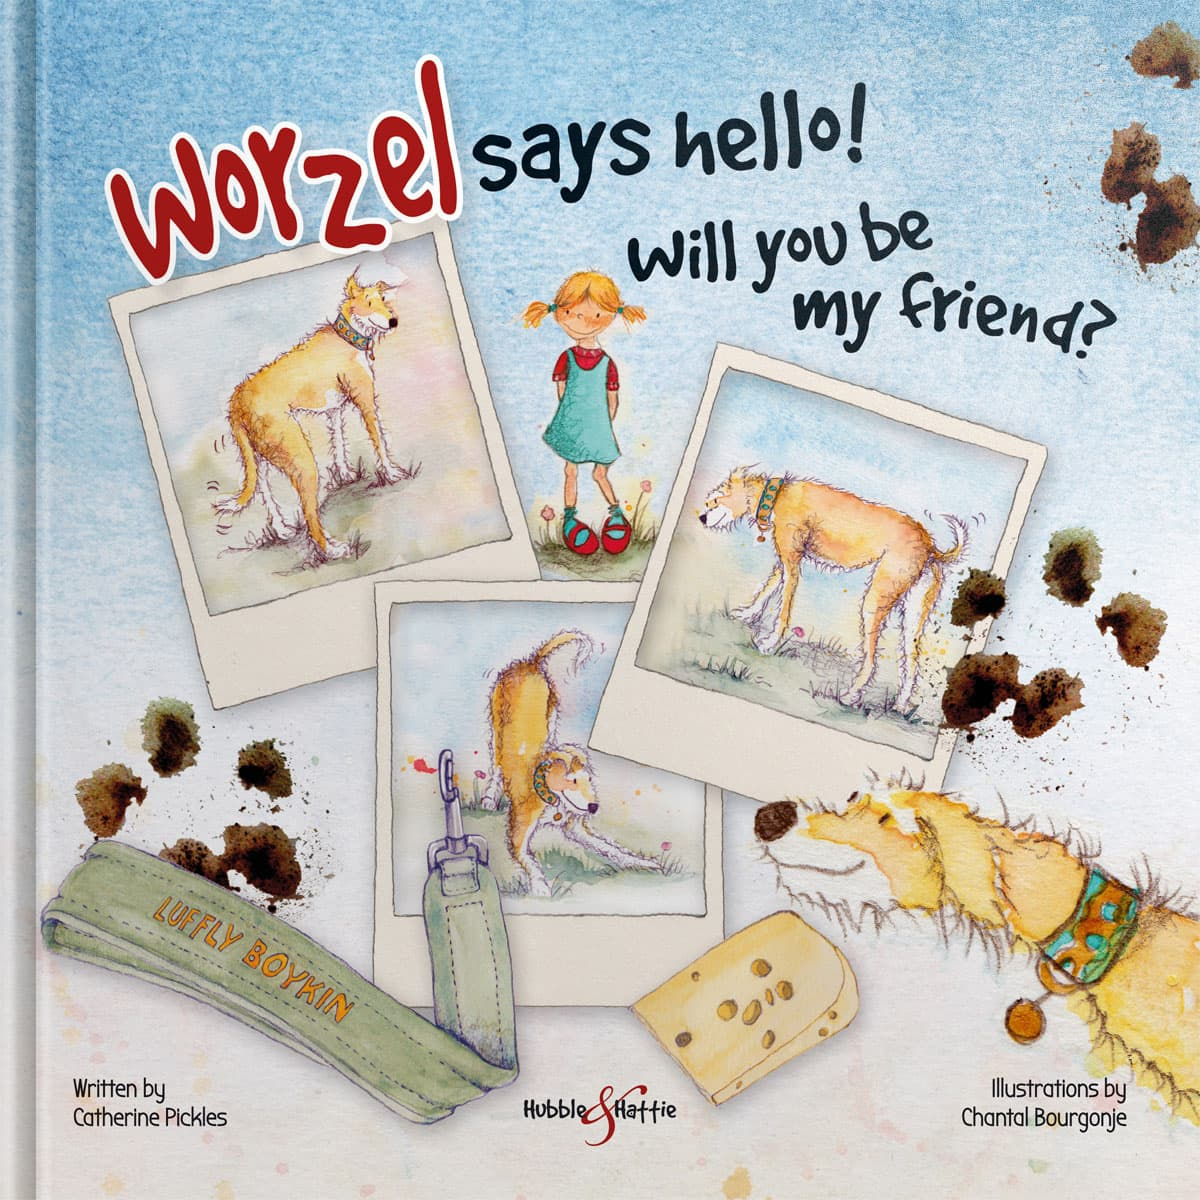 Worzel says hello! – Will you be my friend?